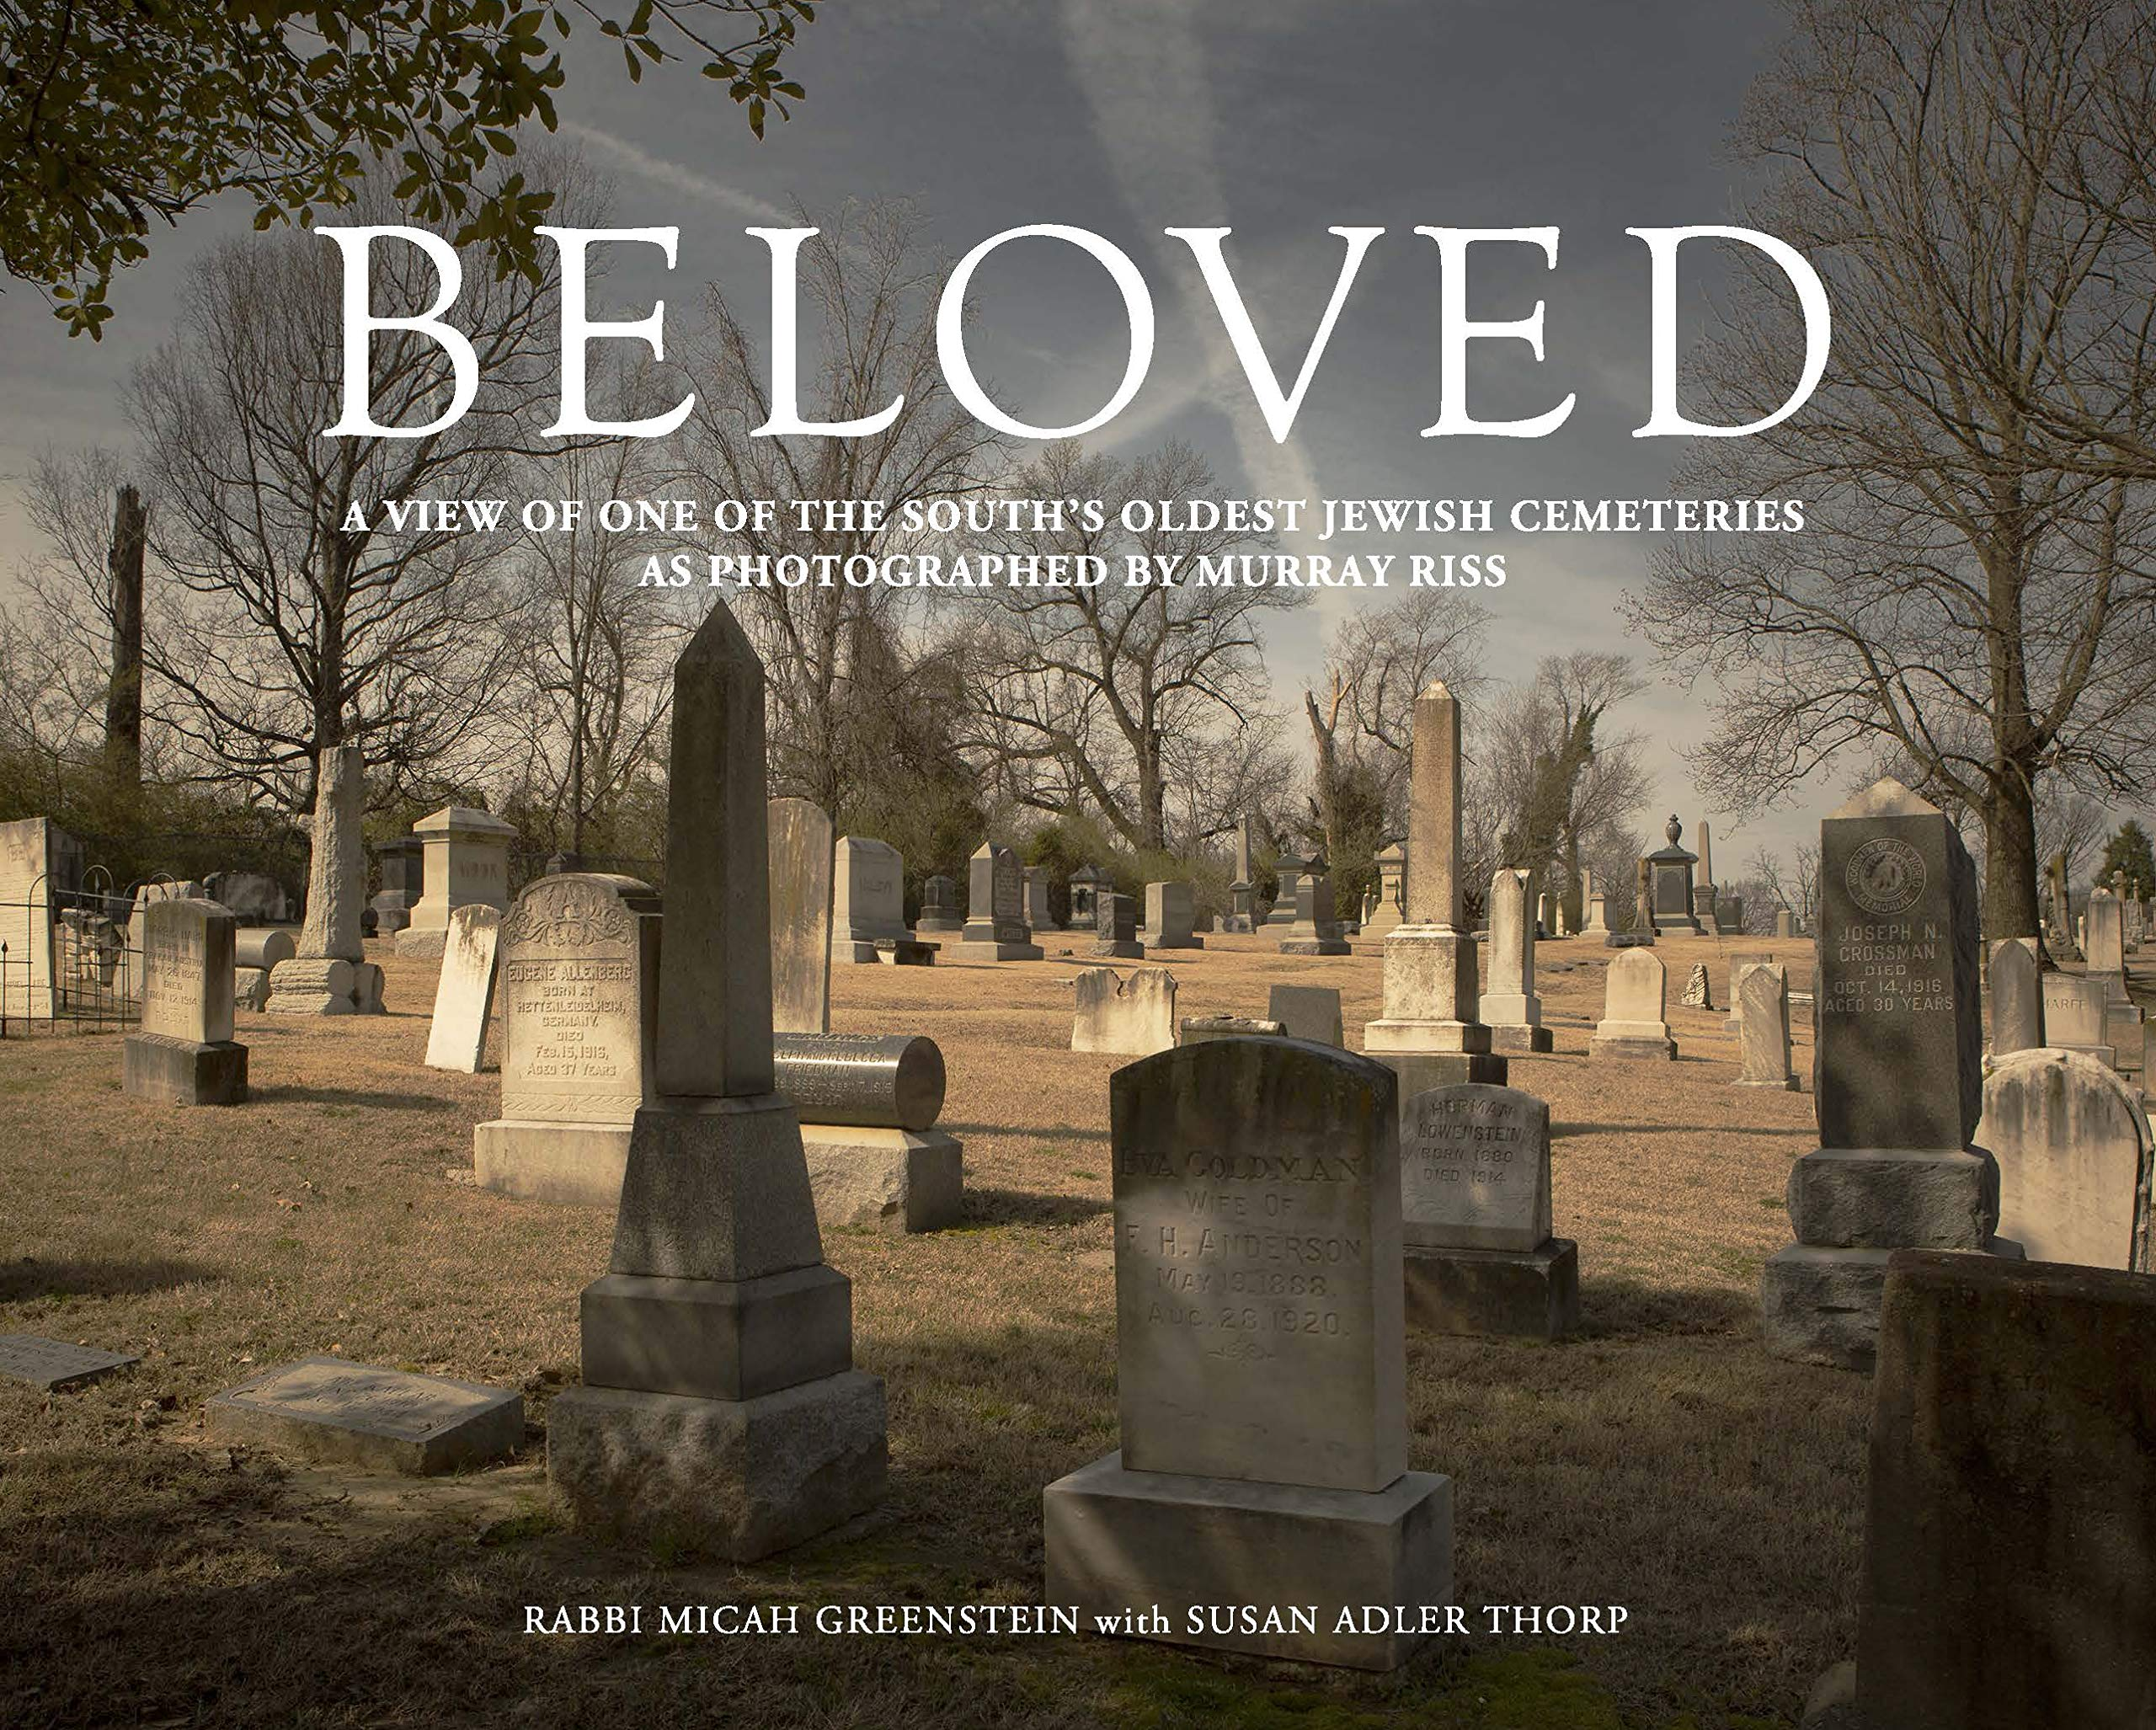 Beloved: A View of One of the South's Oldest Jewish Cemeteries as Photographed by Murray Riss by Susan Schadt Press